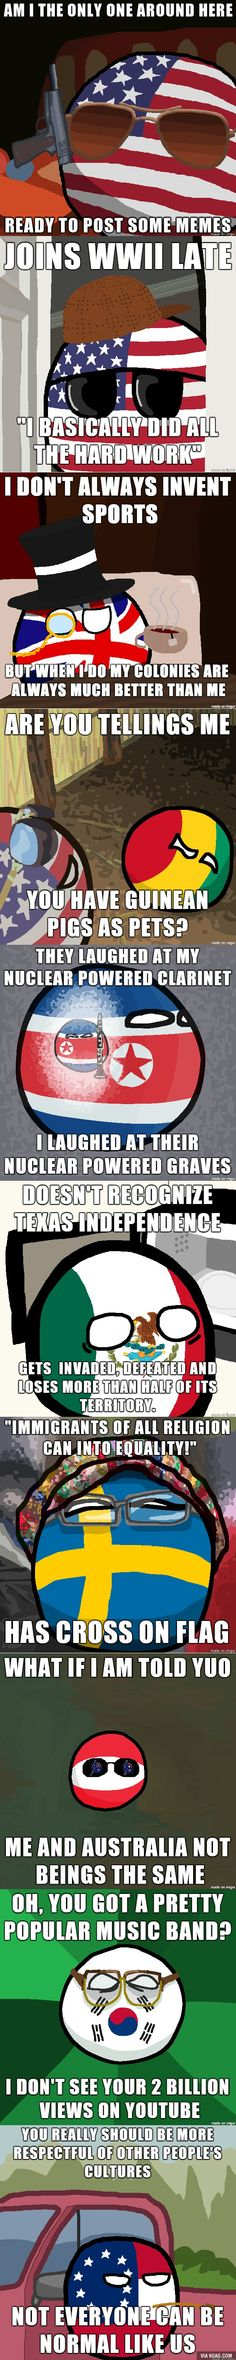 Countryballs can fit into memes now!